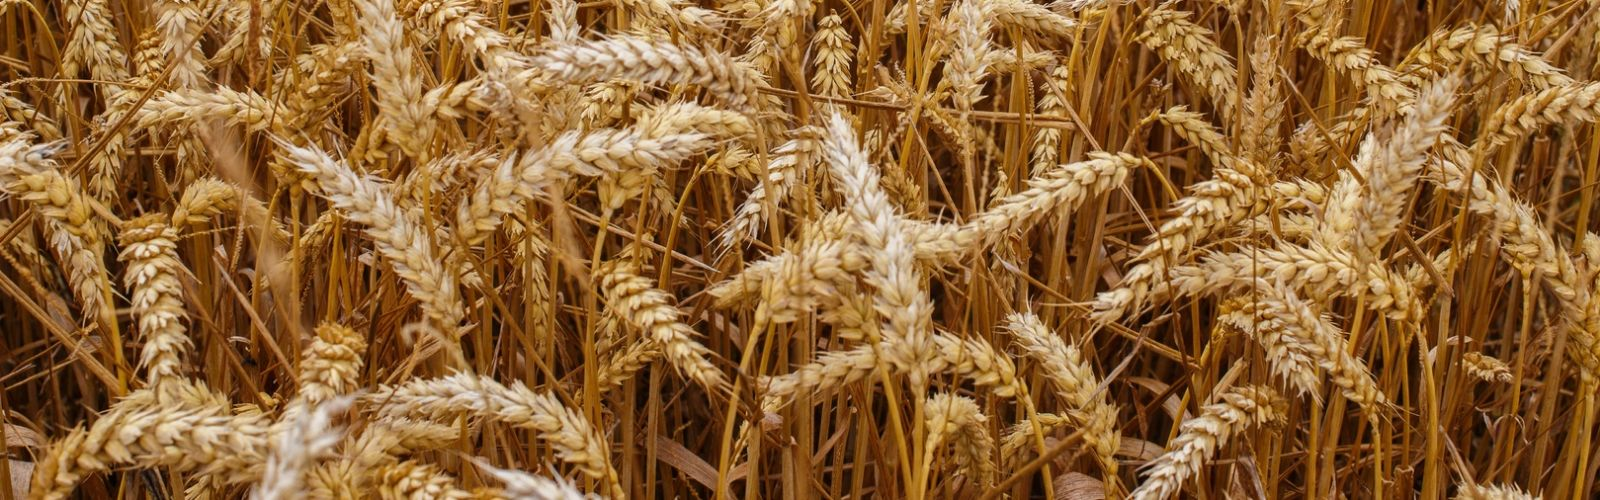 Barley News